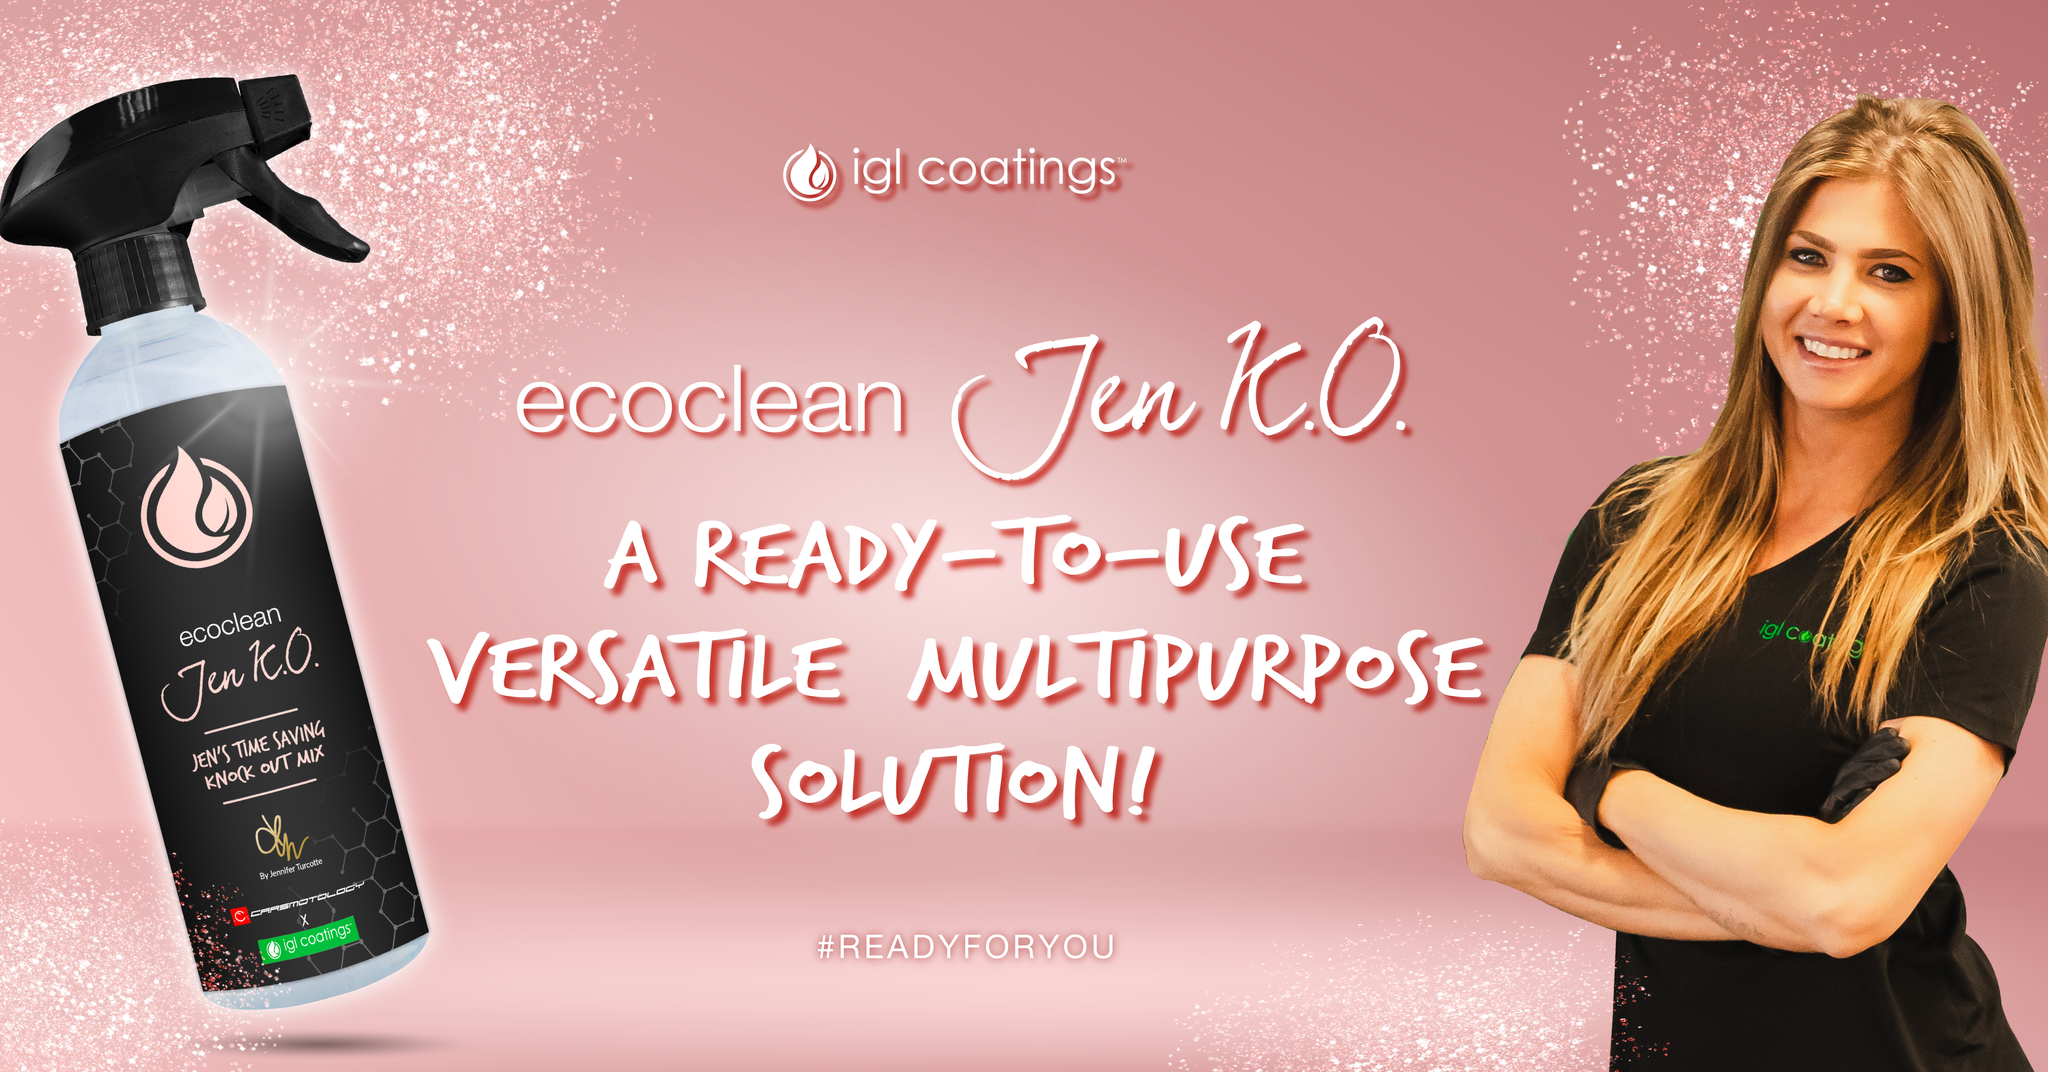 Get Your Hands On Our *Handy* NEW Ecoclean Jen K.O.!